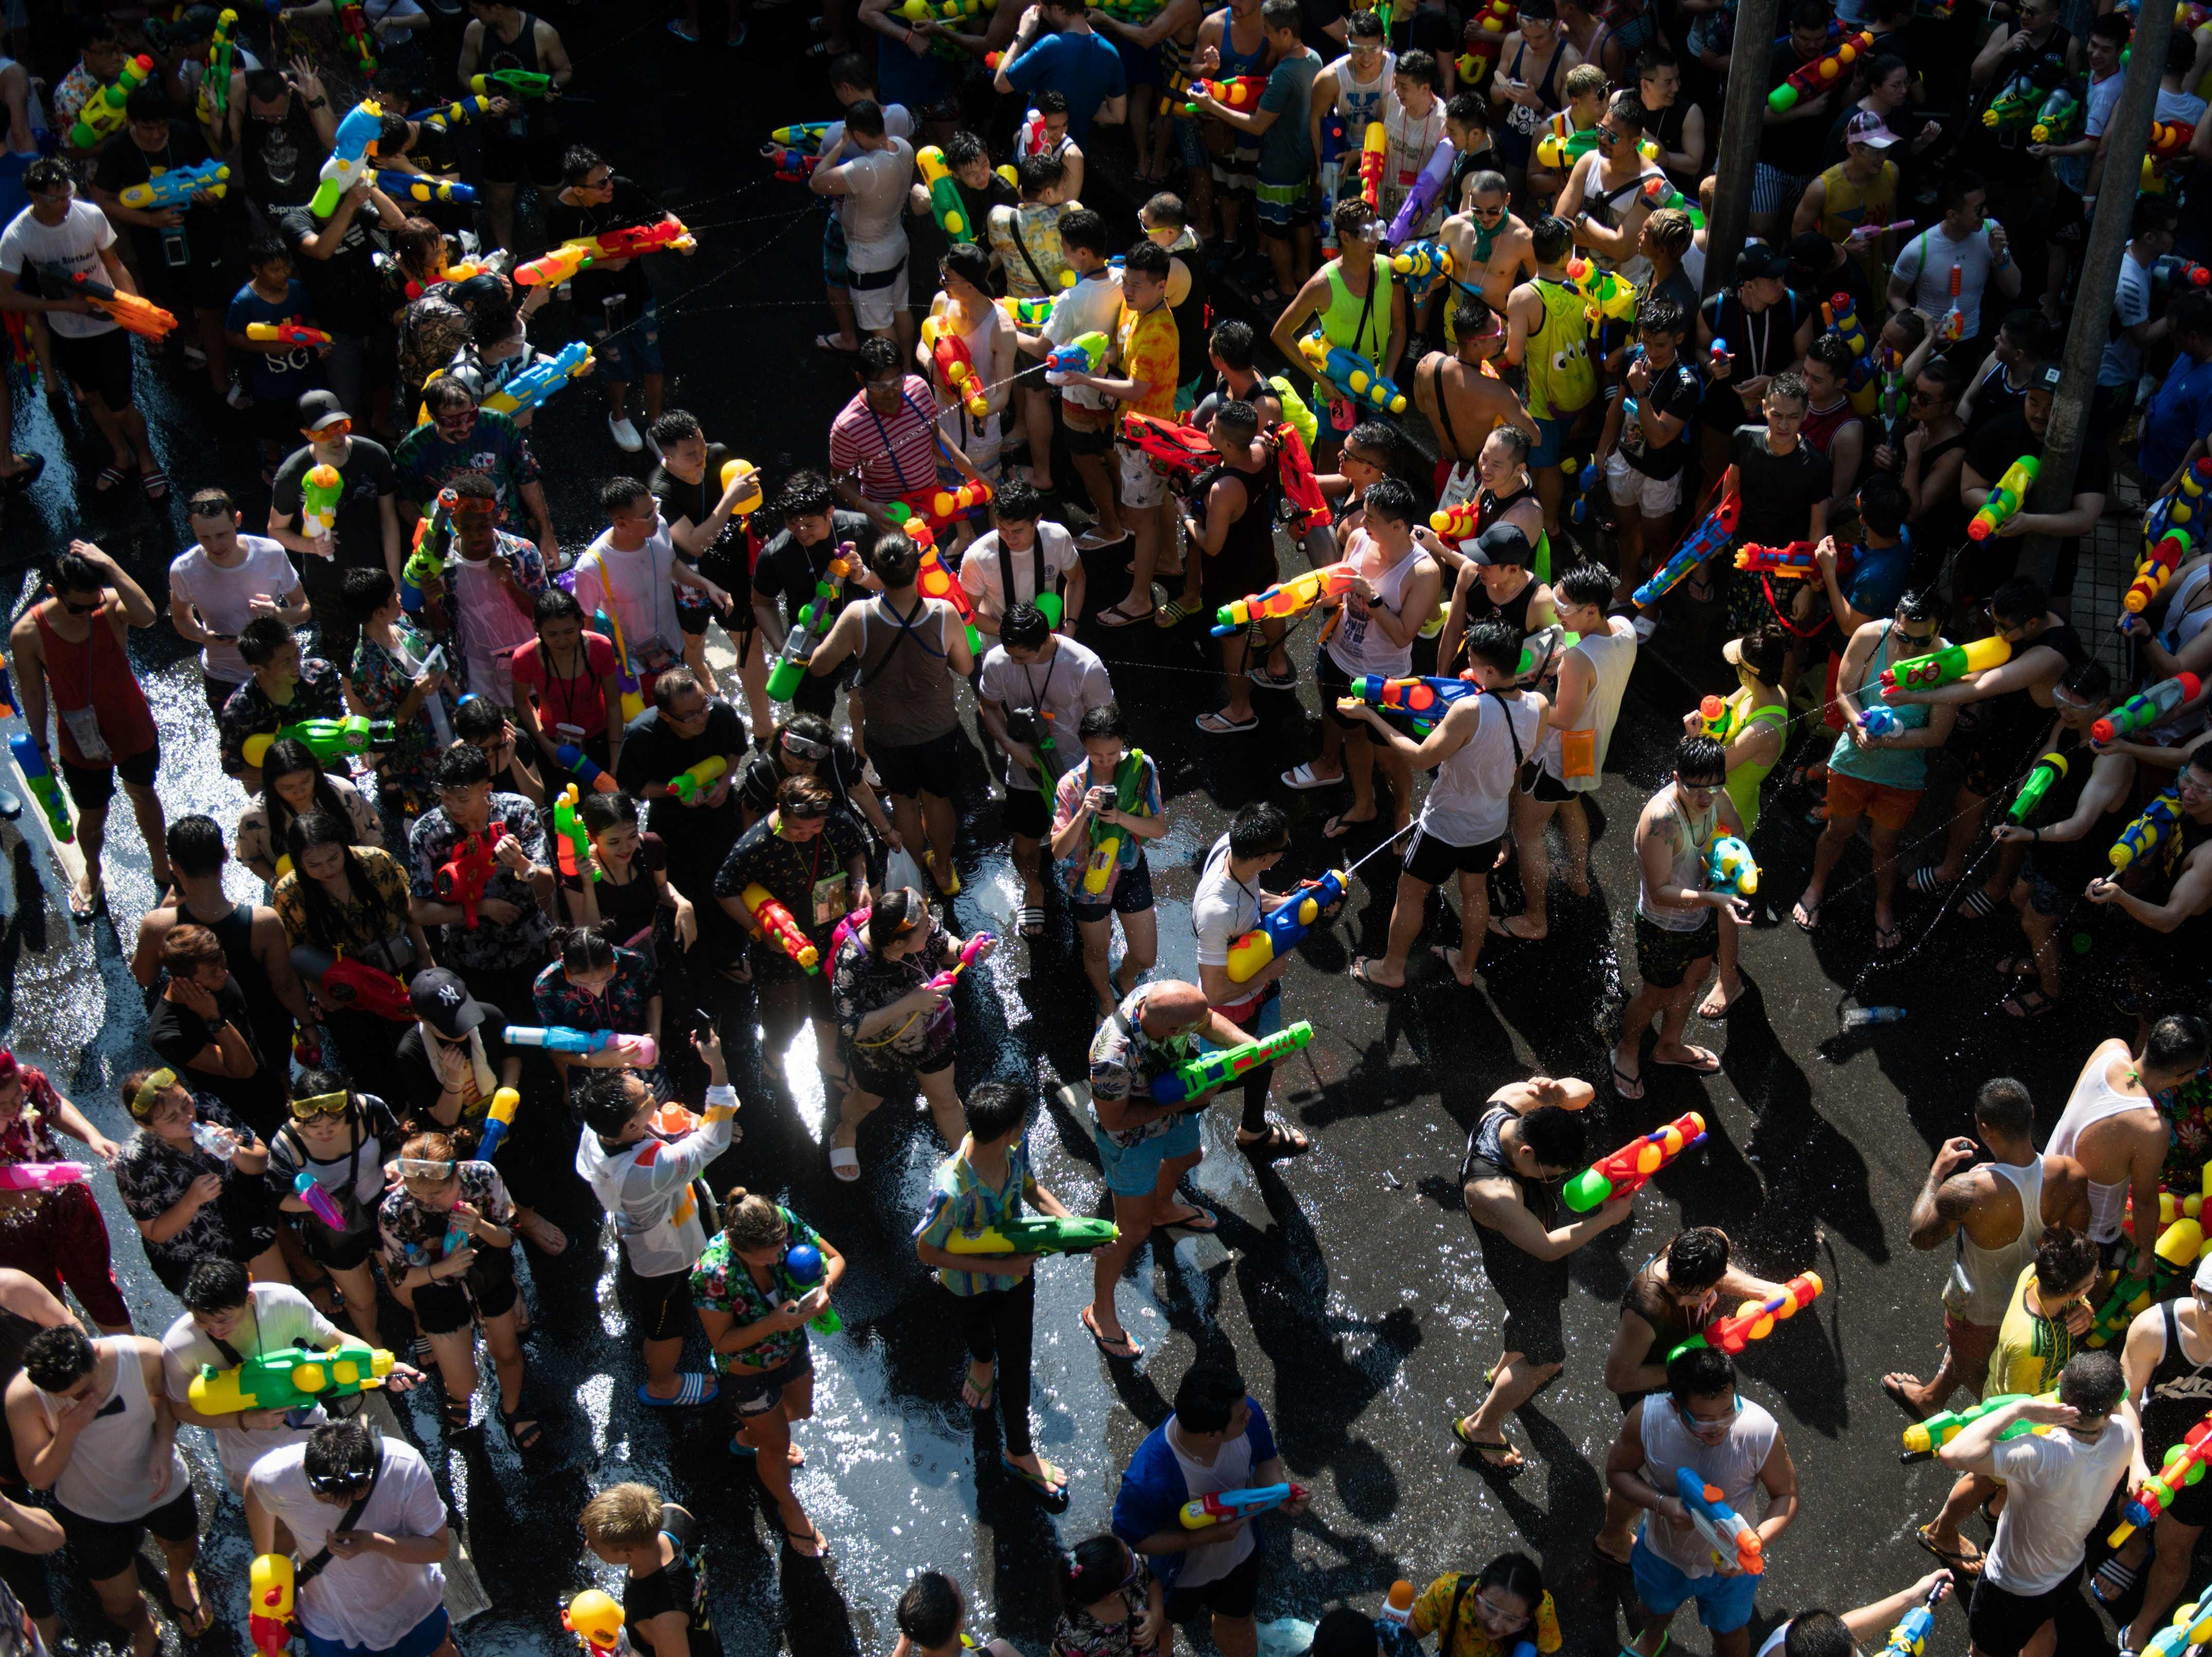 Revelers use water guns to spray at one another as they celebrate the Buddhist New Year, locally known as Songkran, in Bangkok, Thailand on April 13, 2019.